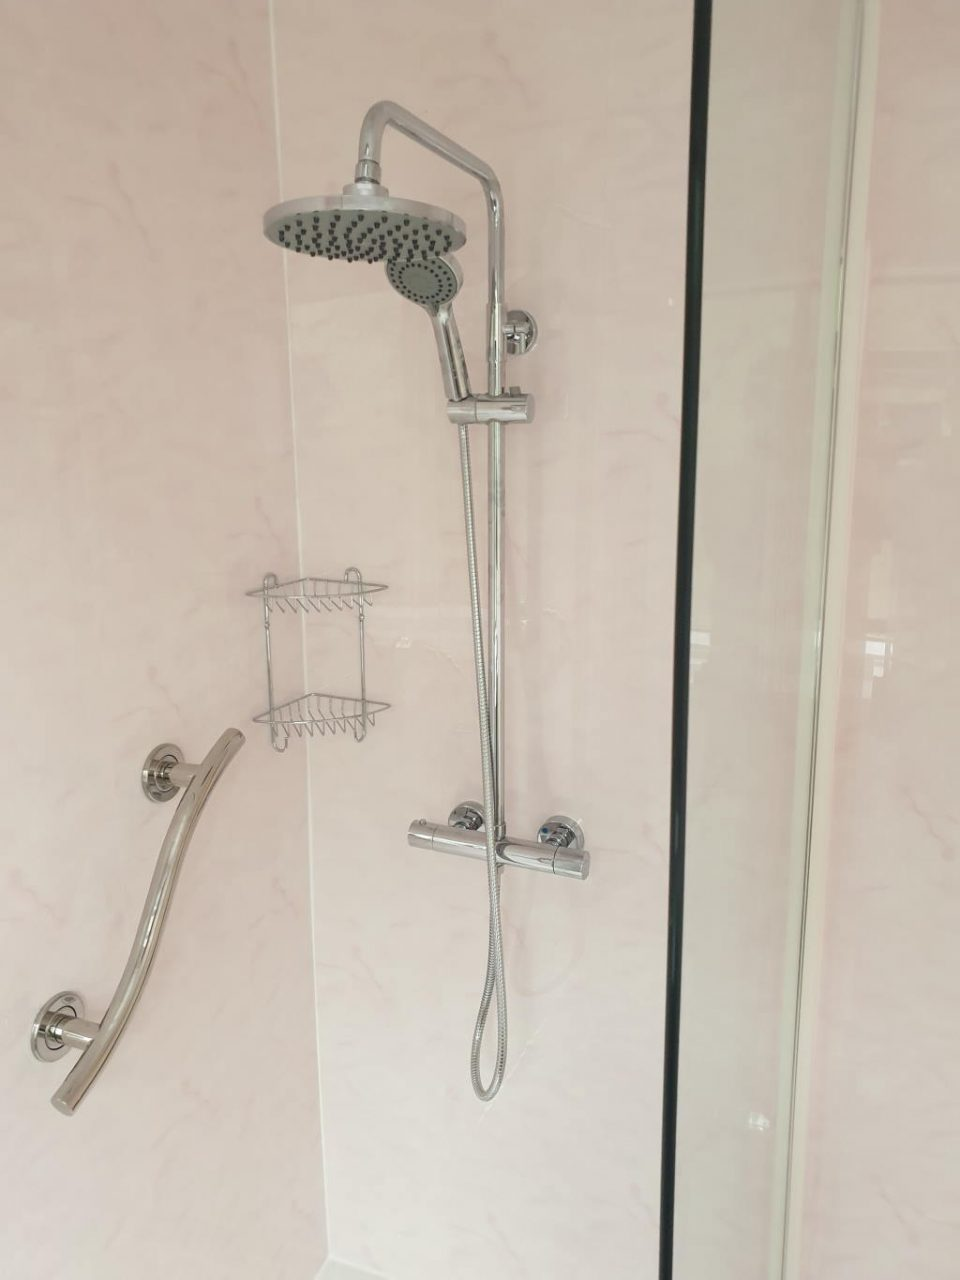 New Ensuite Bathroom Fitter in Walsall Mrs Holmes Walsall Shower Room Installer Grab Rail